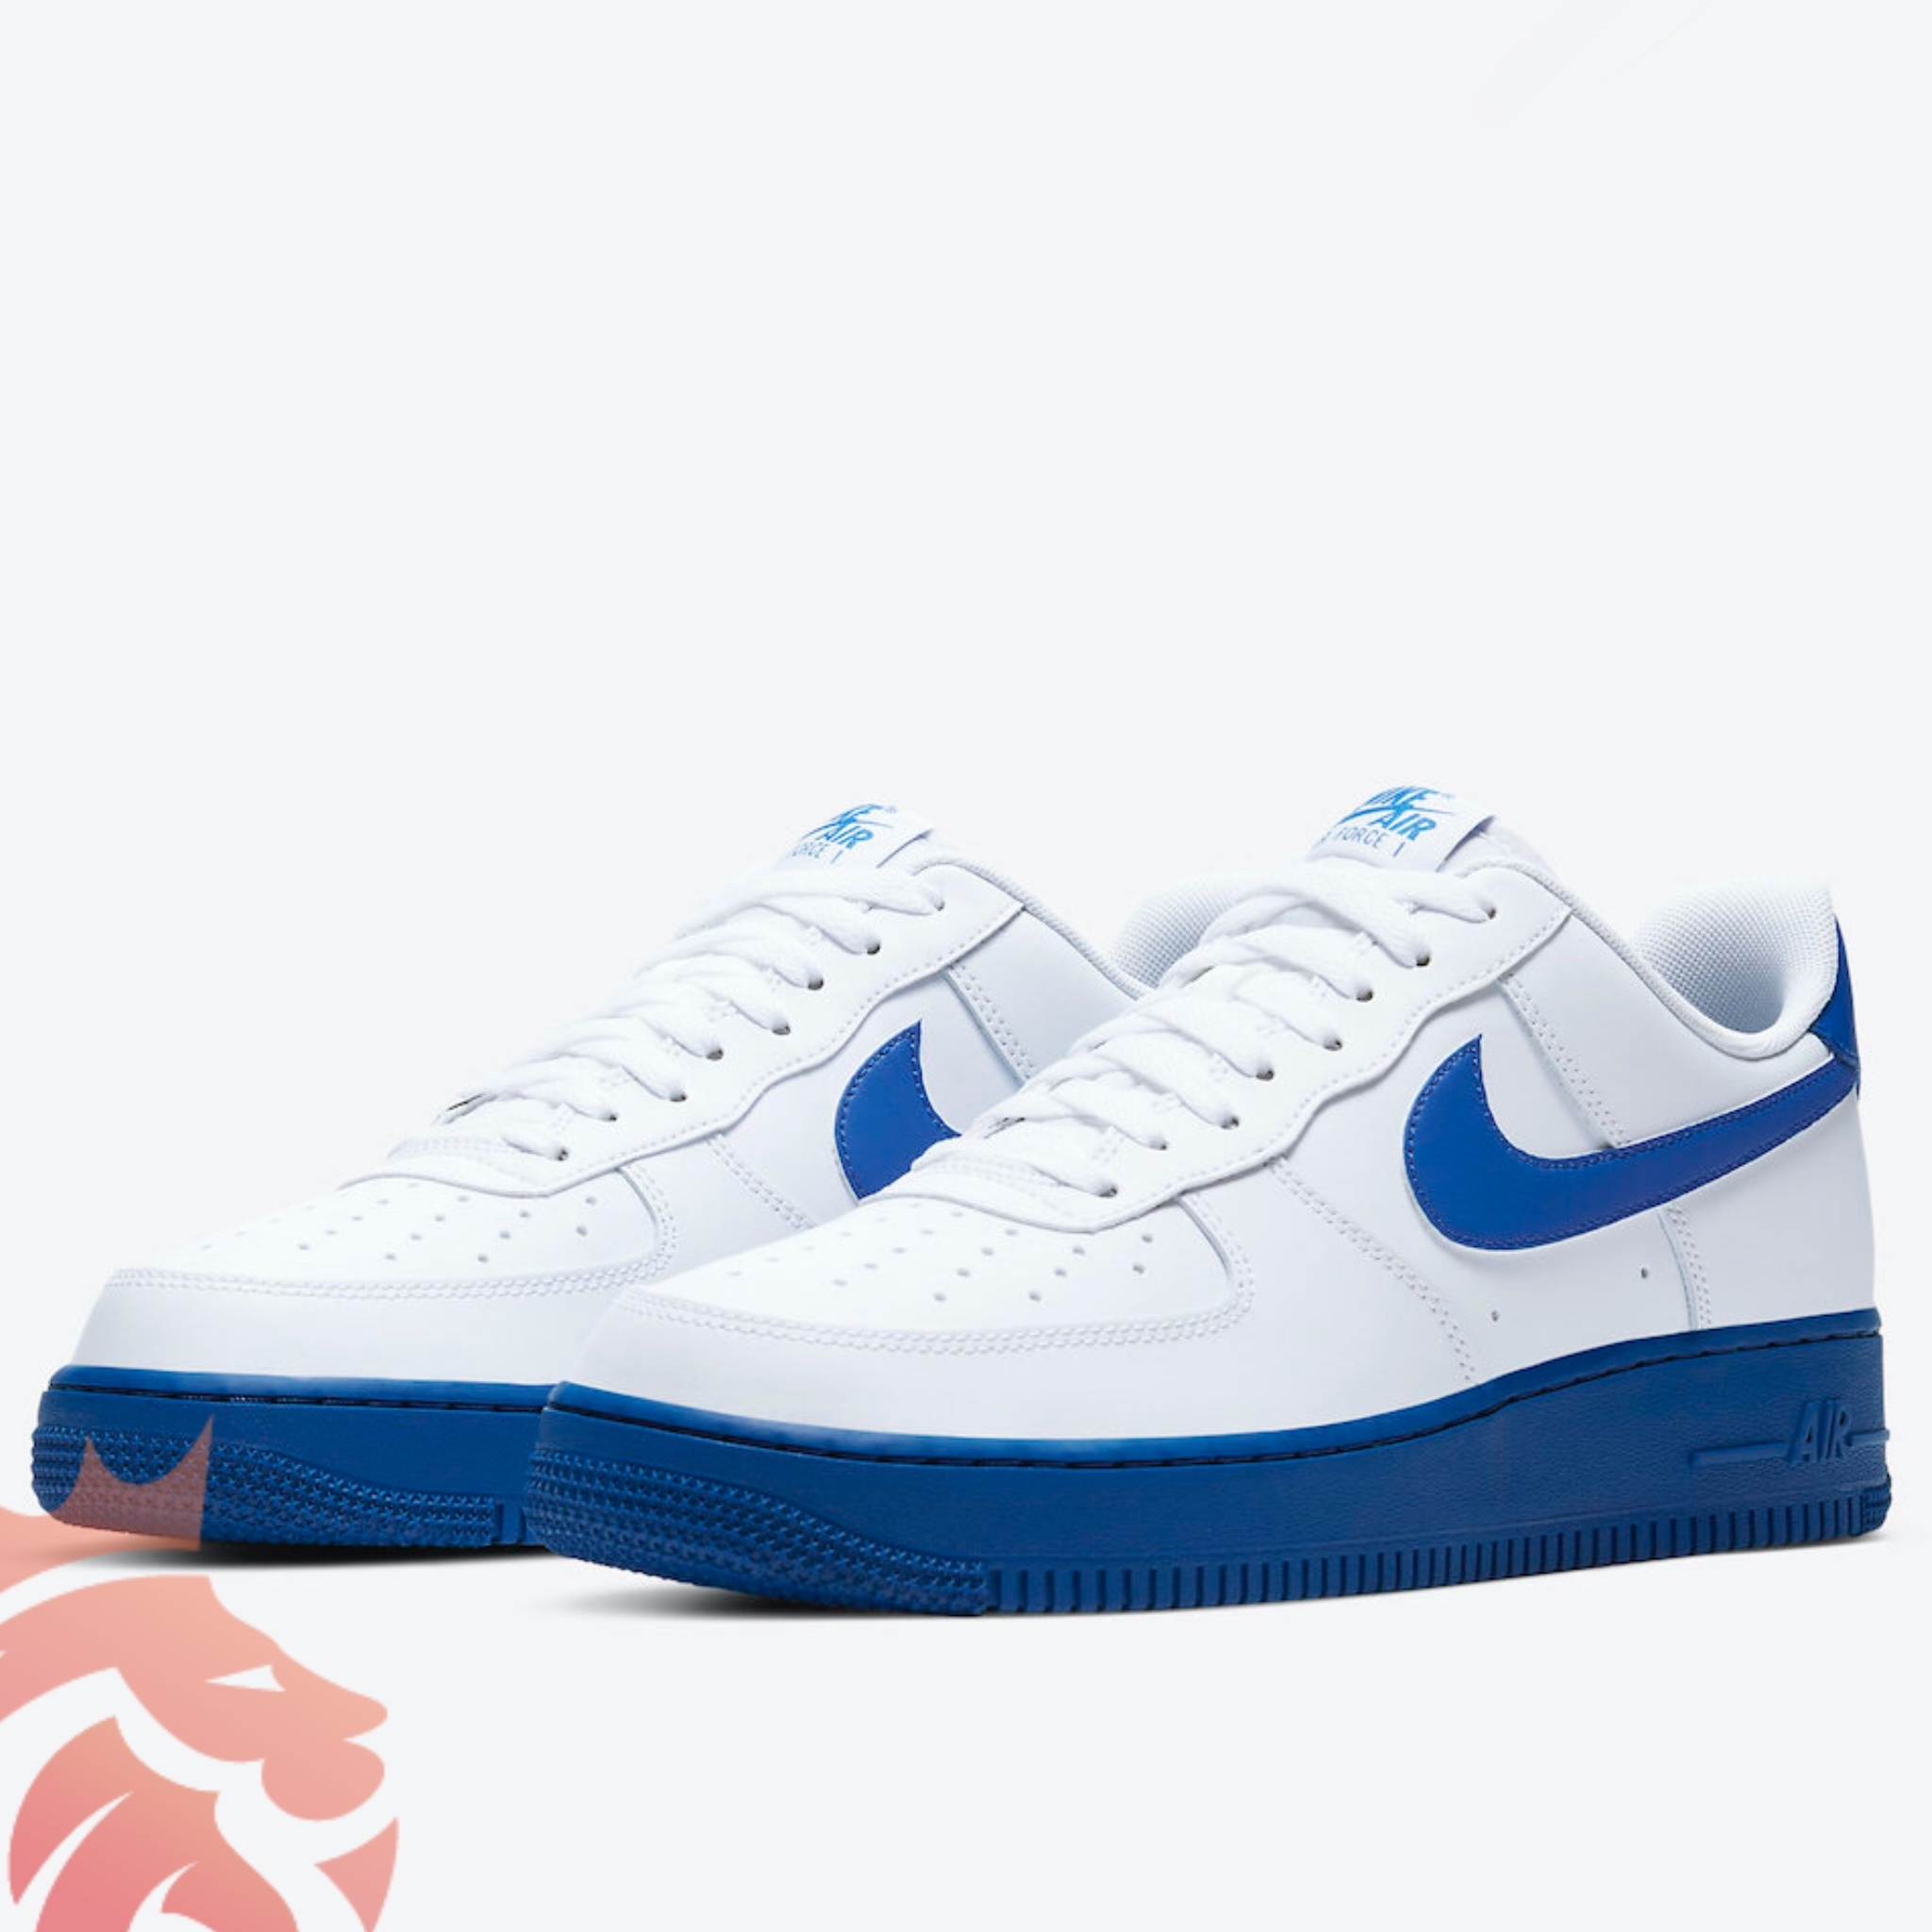 Air Force 1 Low CK7663-1013 White/Royal Blue